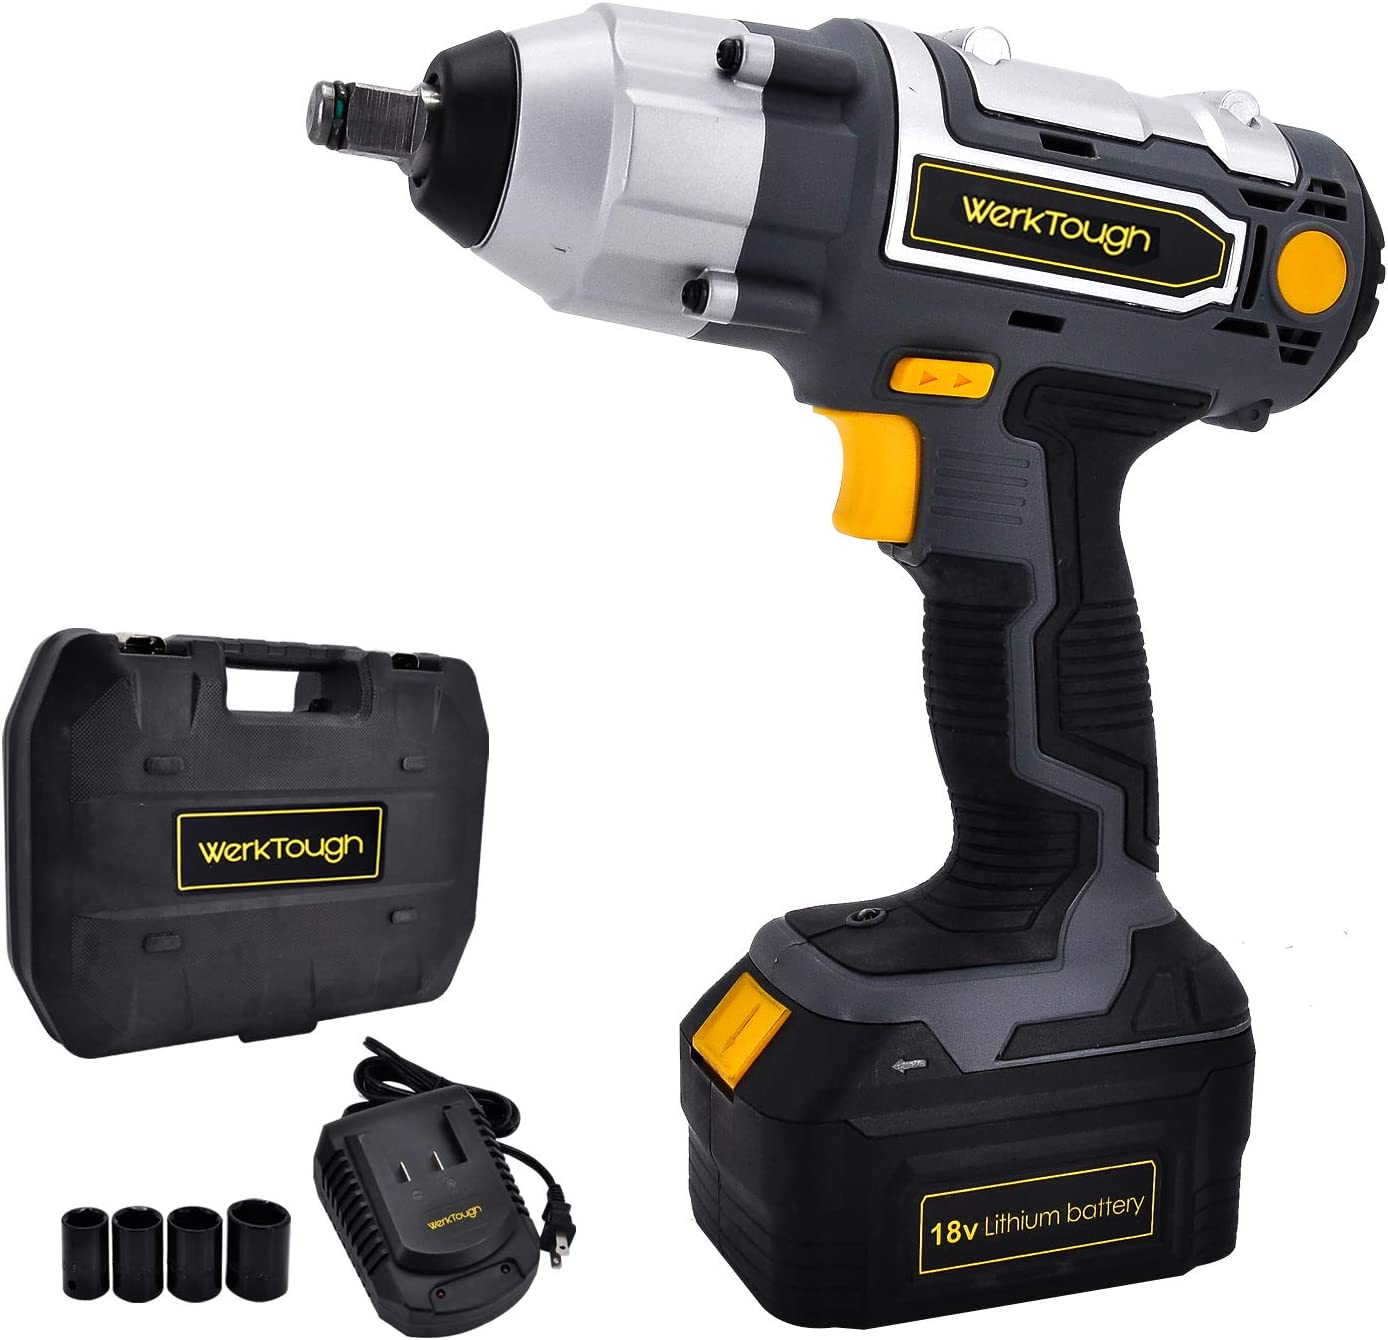 Uniteco 1 2 Cordless Impact Wrench Kit, 18V Battery Operated Impact Driver Tool with Carrying Case – High Torque 206ft-lbs